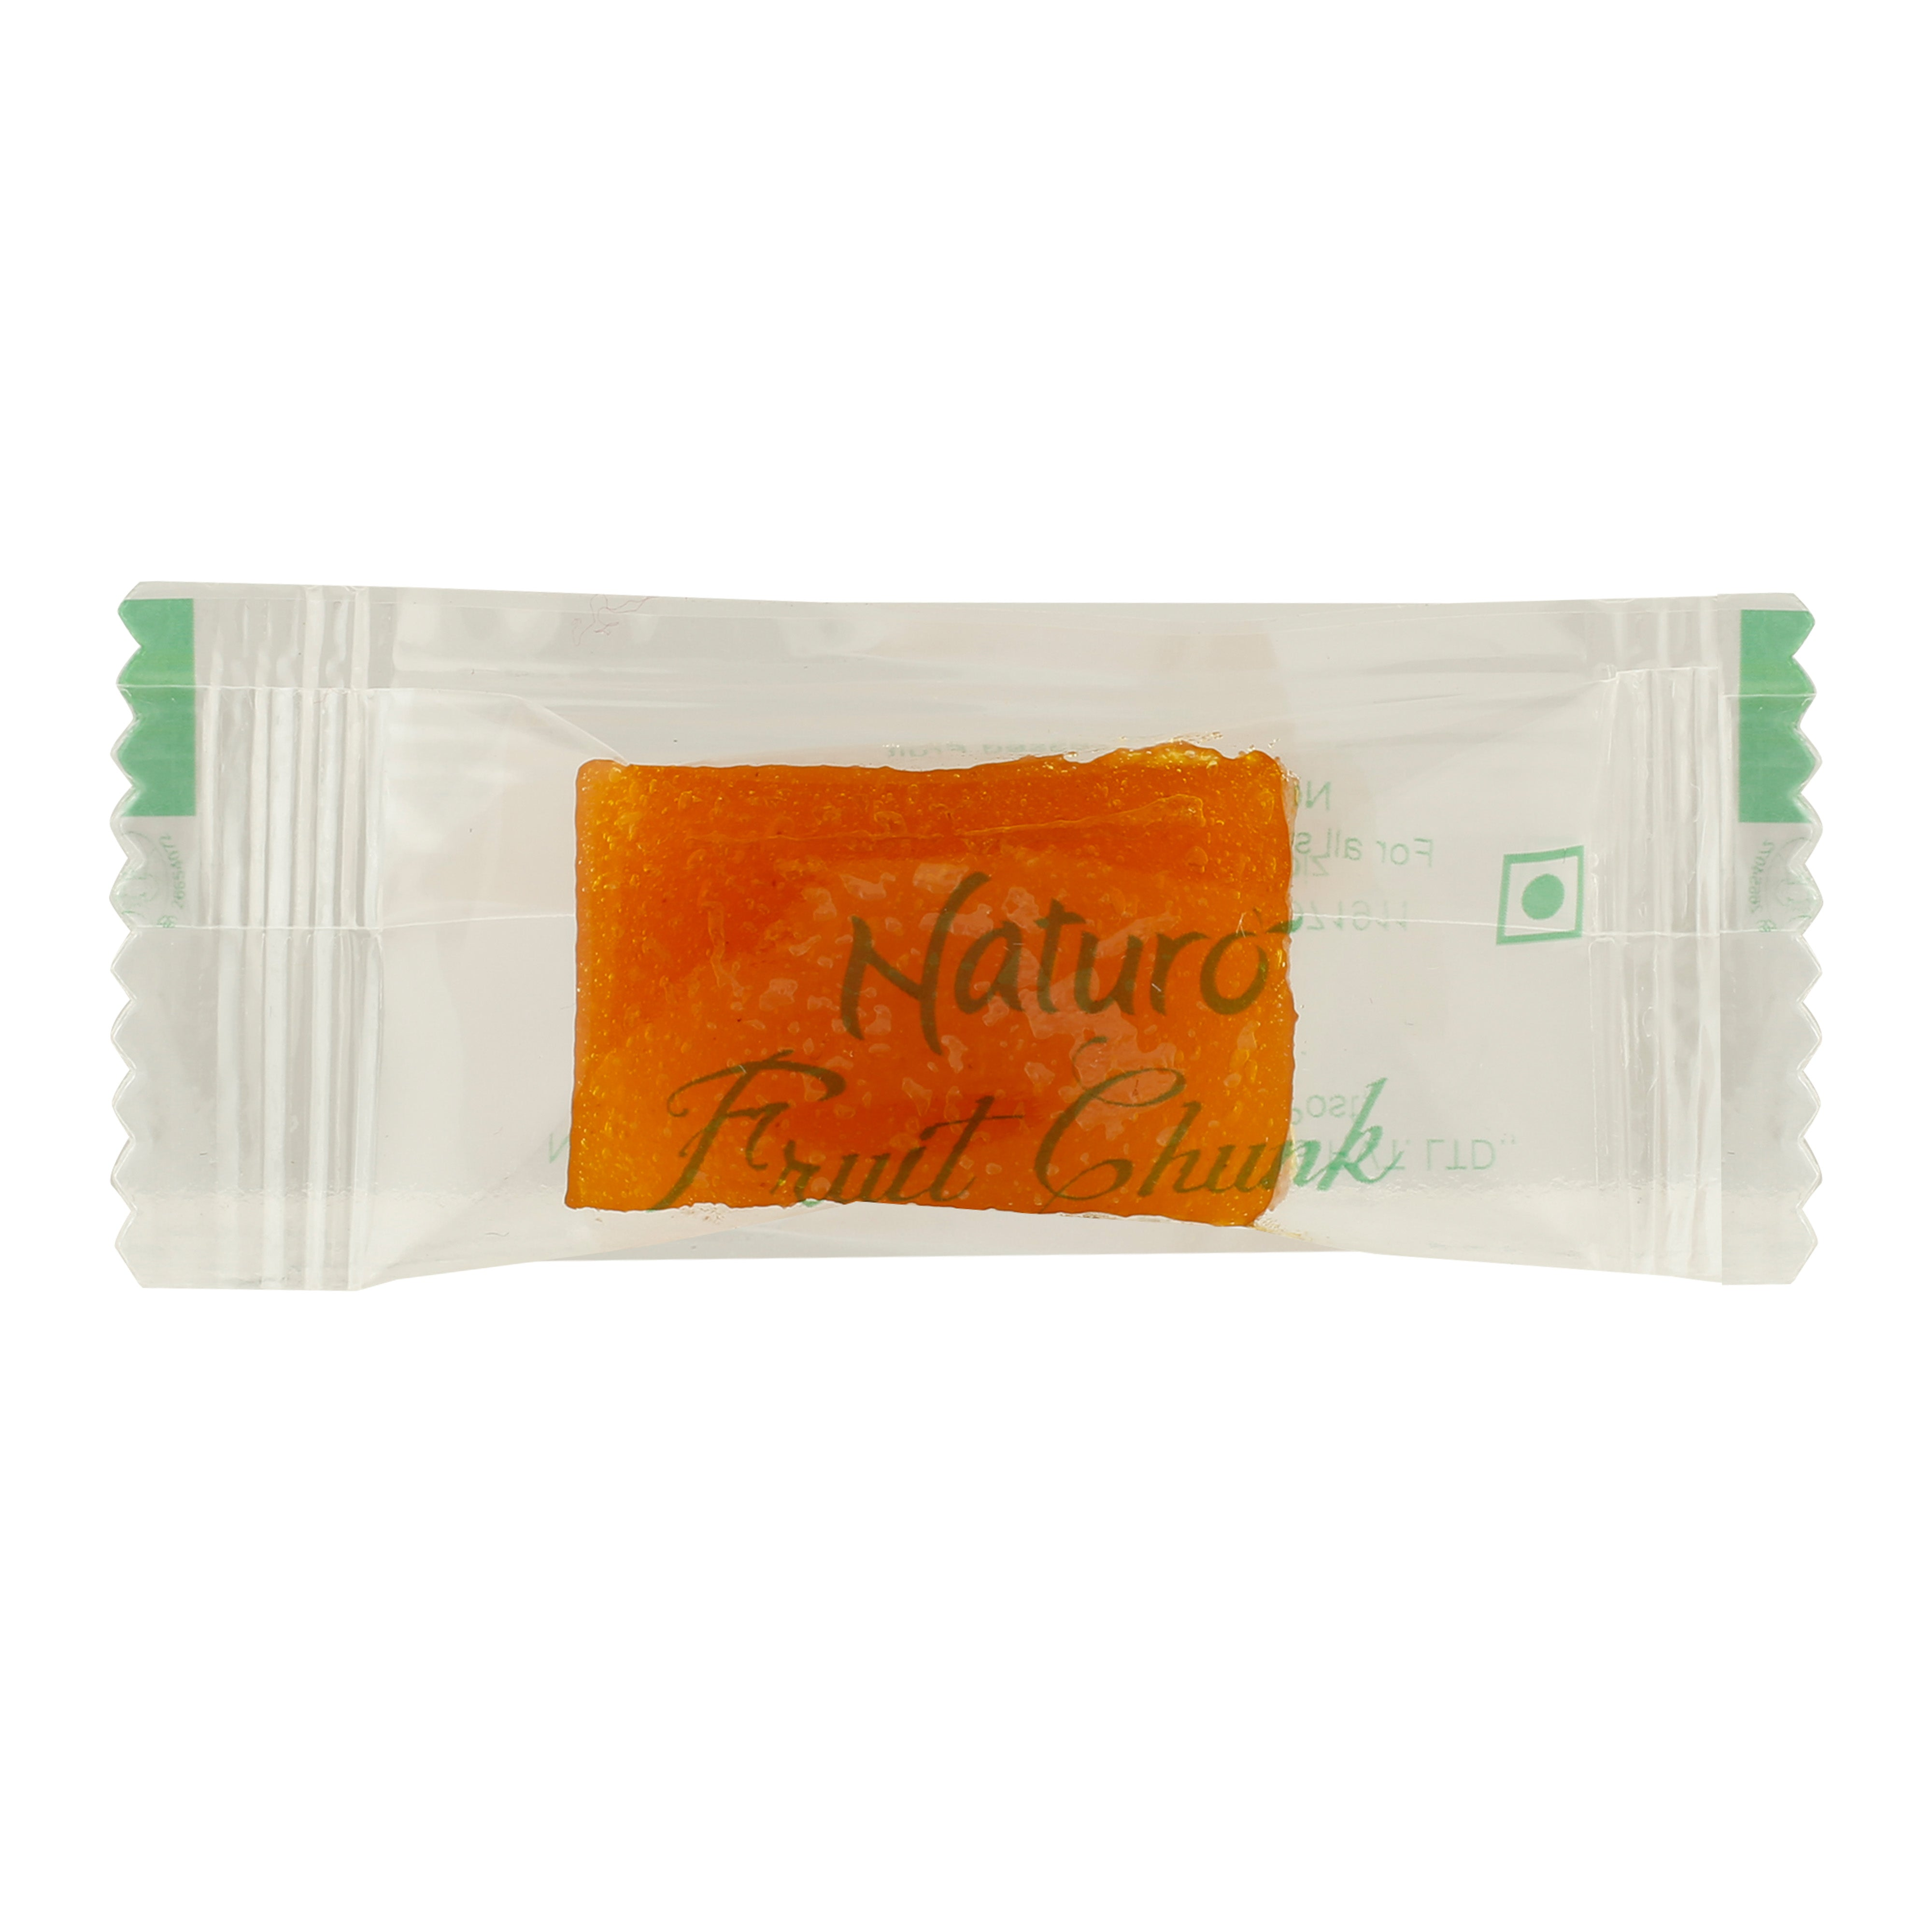 Naturo Mango Fruit Bites Stand Up Pouch - 540g